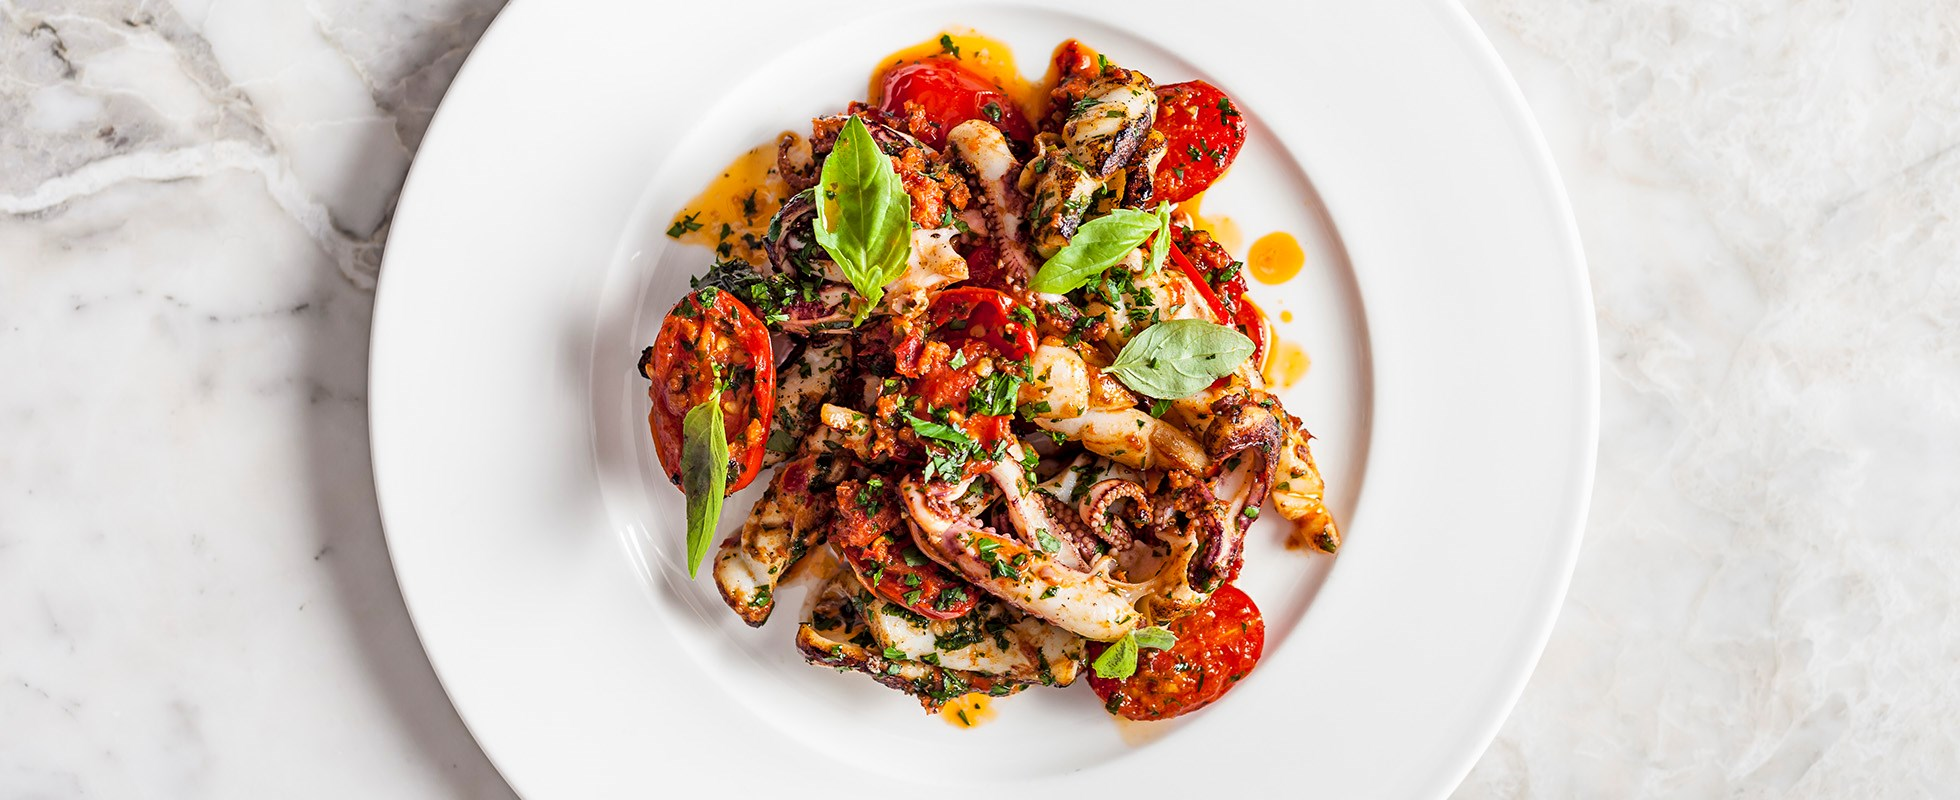 Charred squid with tomatoes